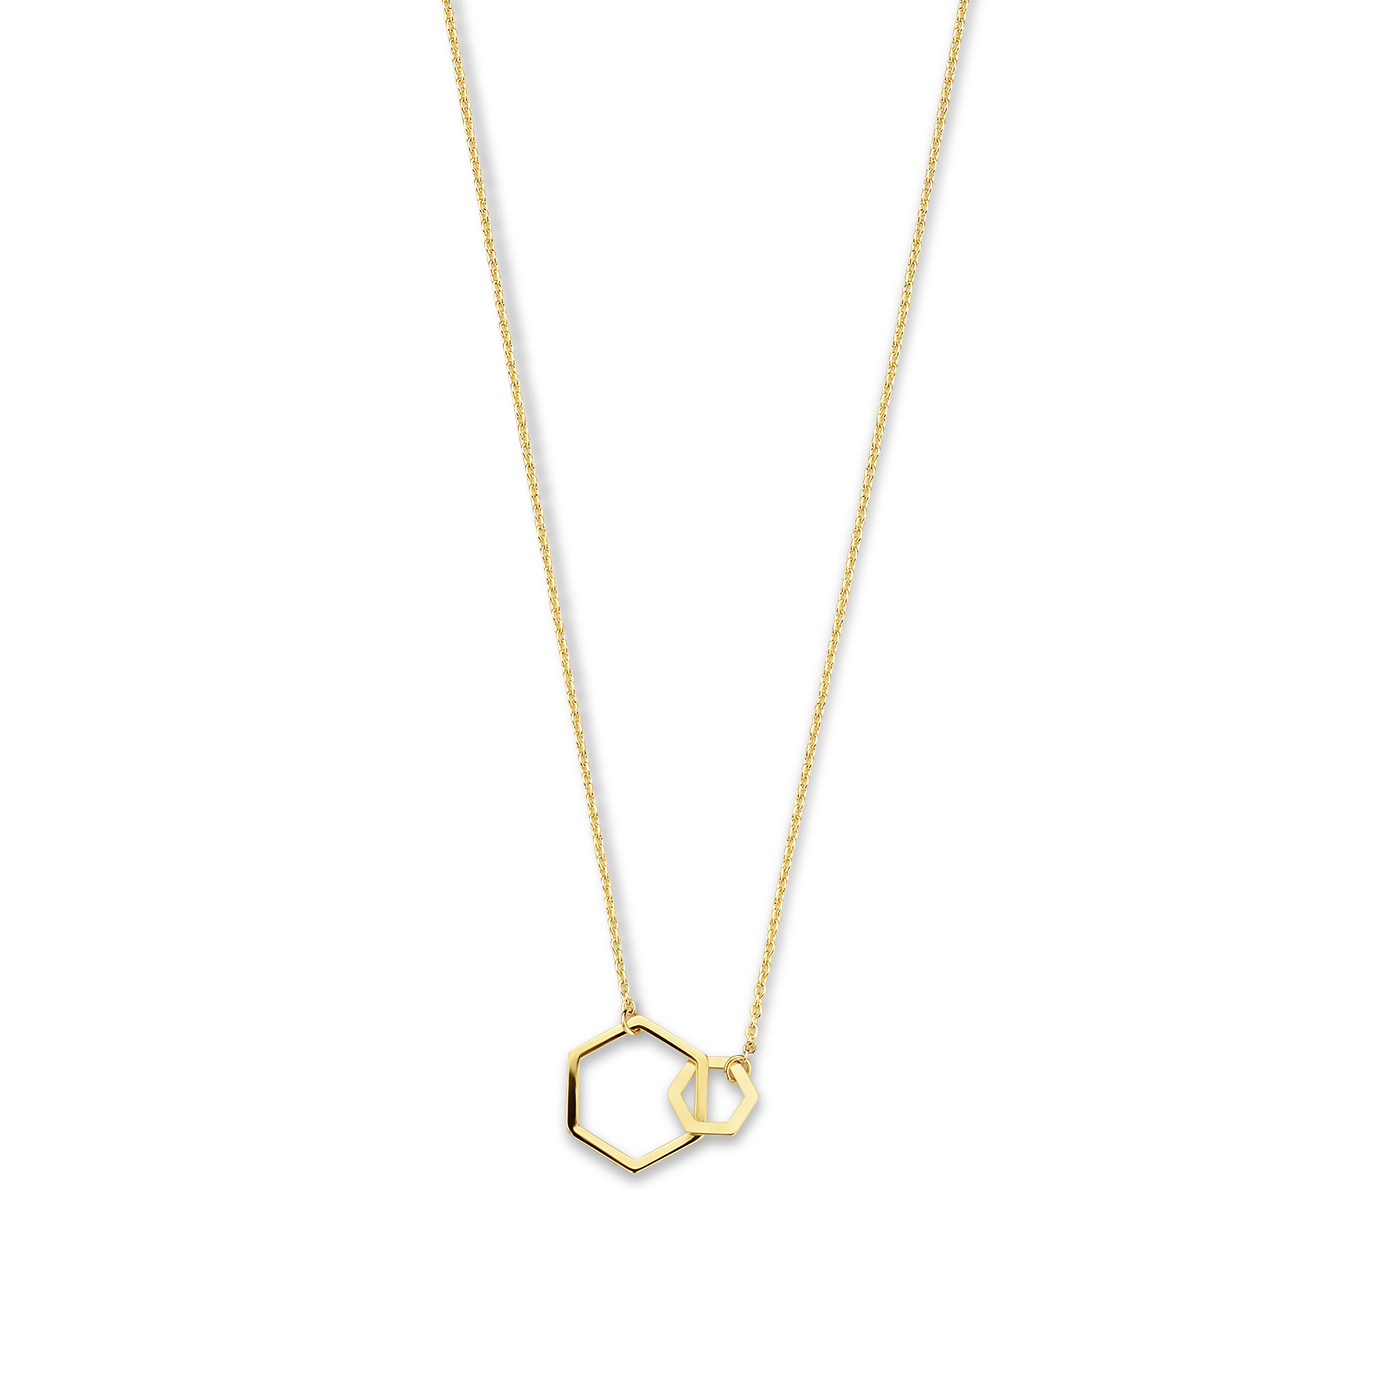 Isabel Bernard Belleville Elena 14 karat gold necklace with hexagon